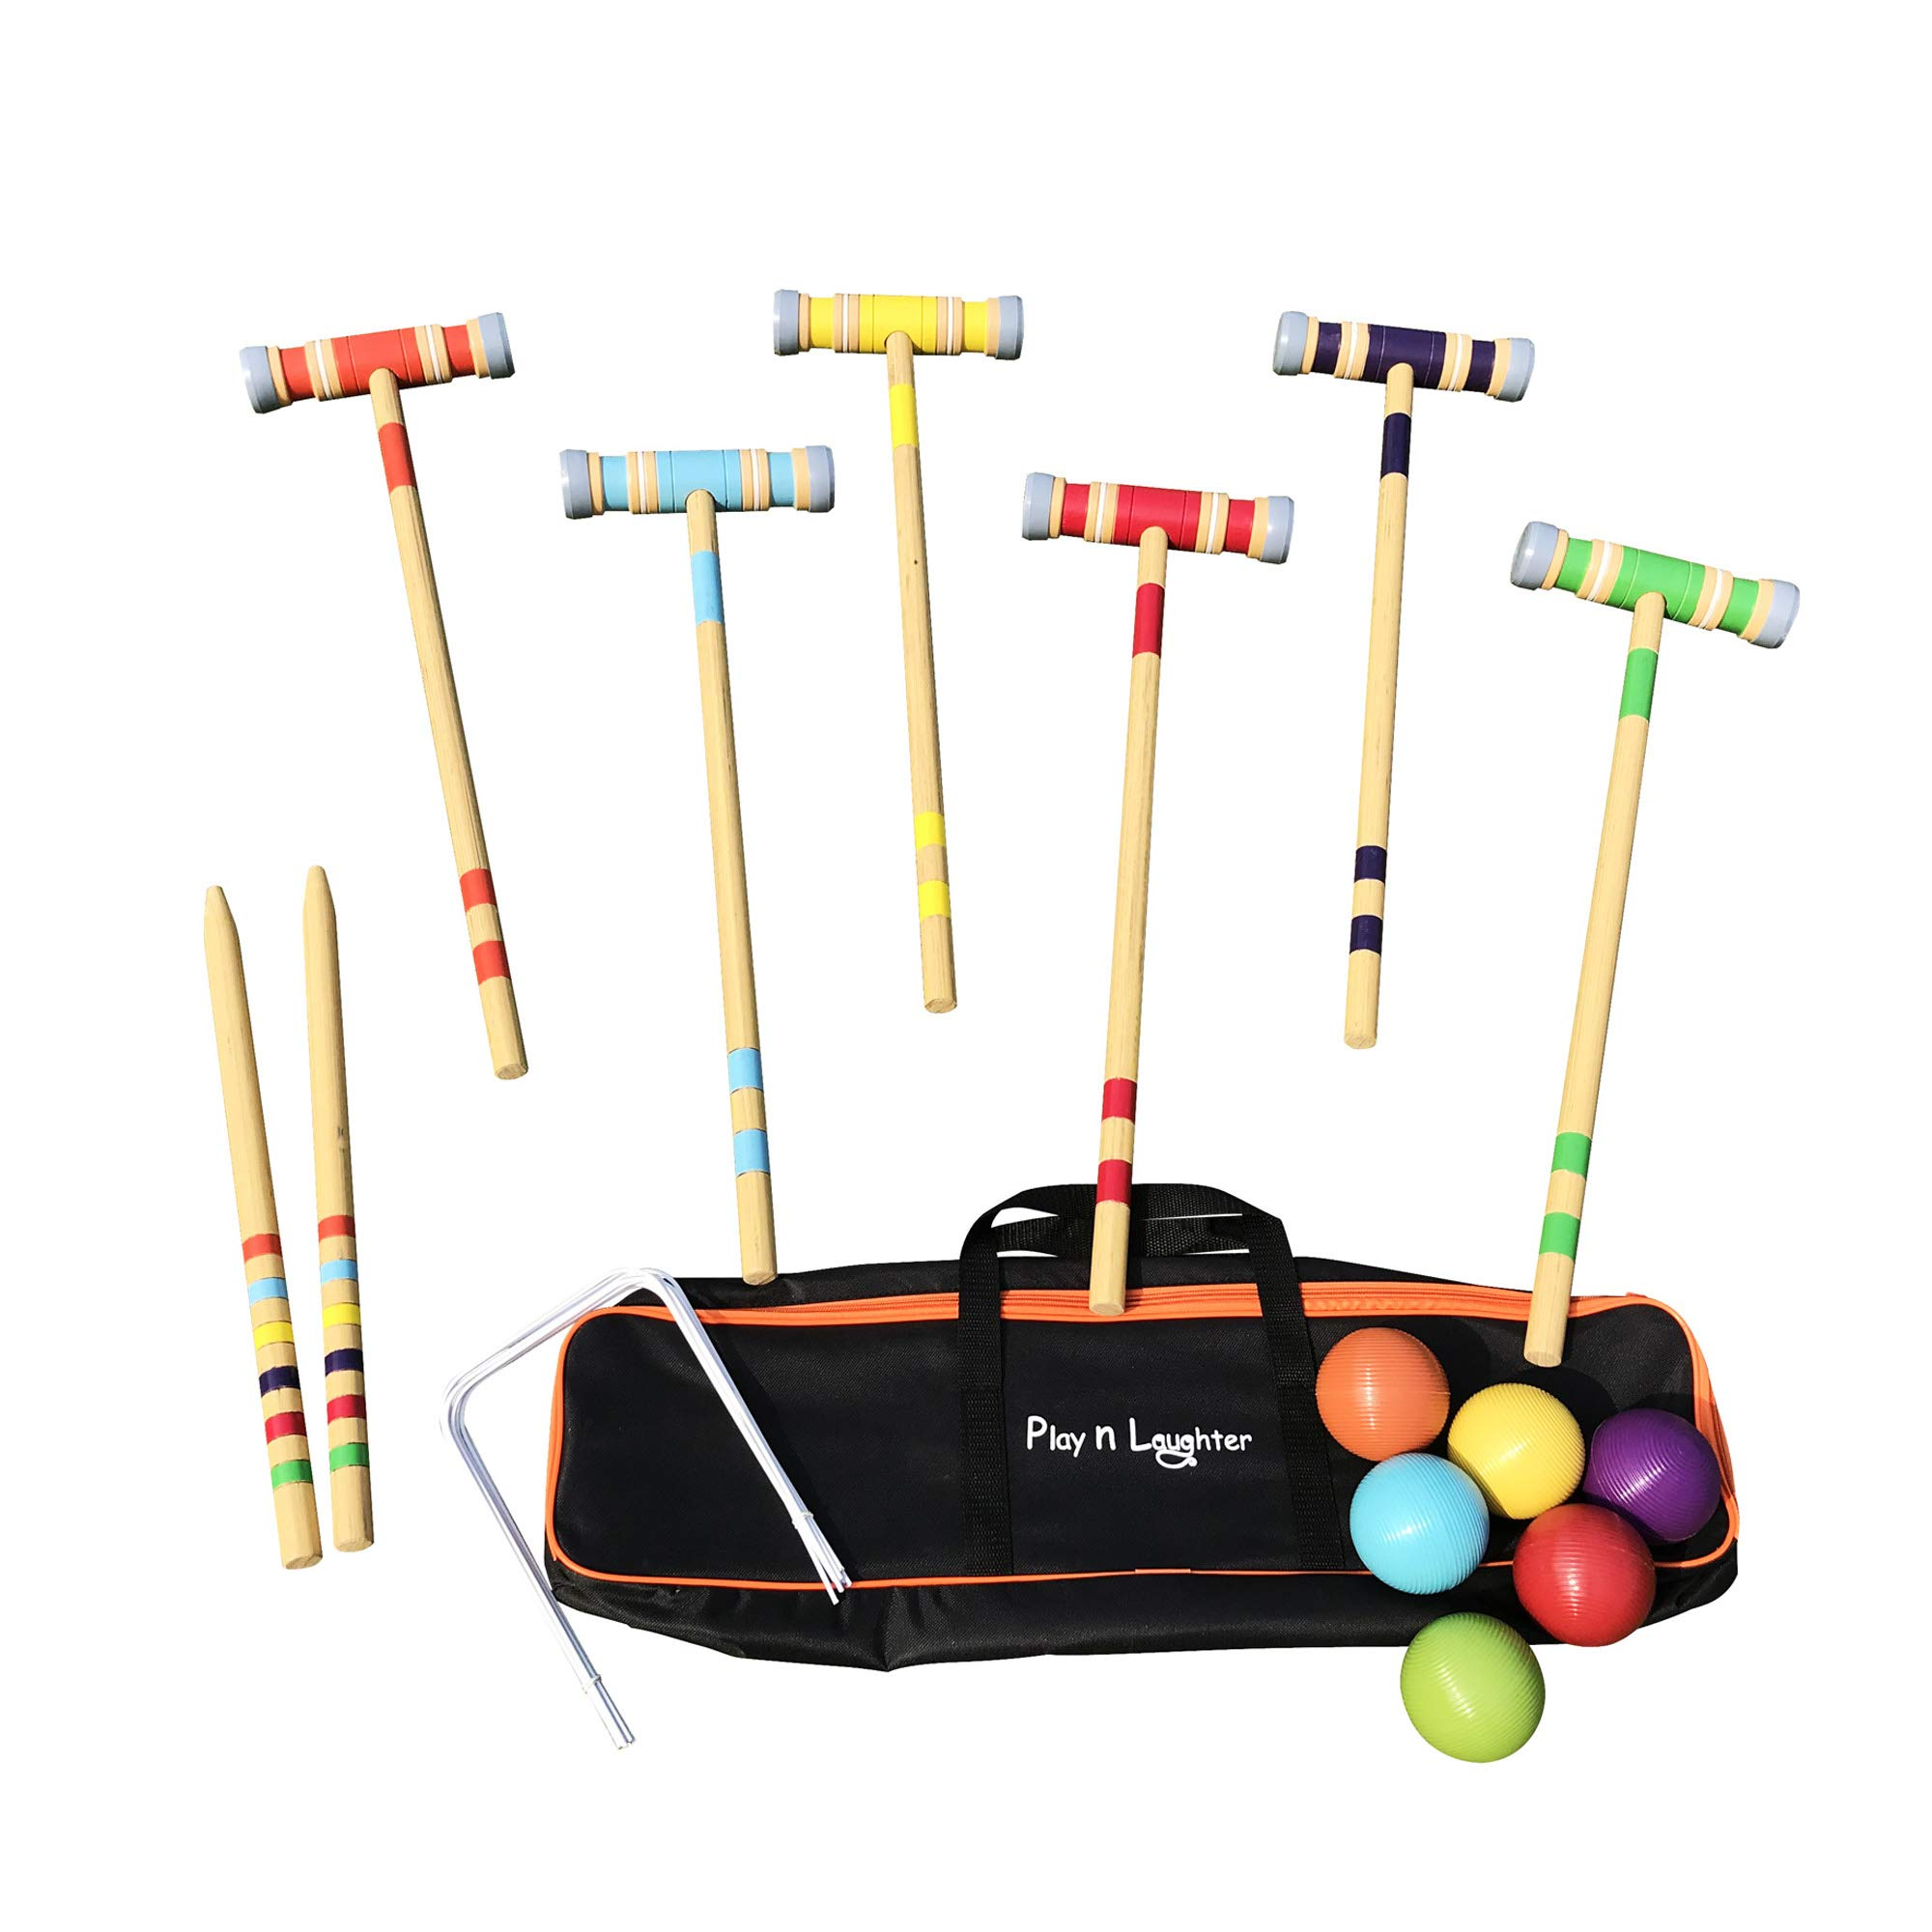 Play N Laughter 6 Player Croquet Set with Carrying Bag - 26''